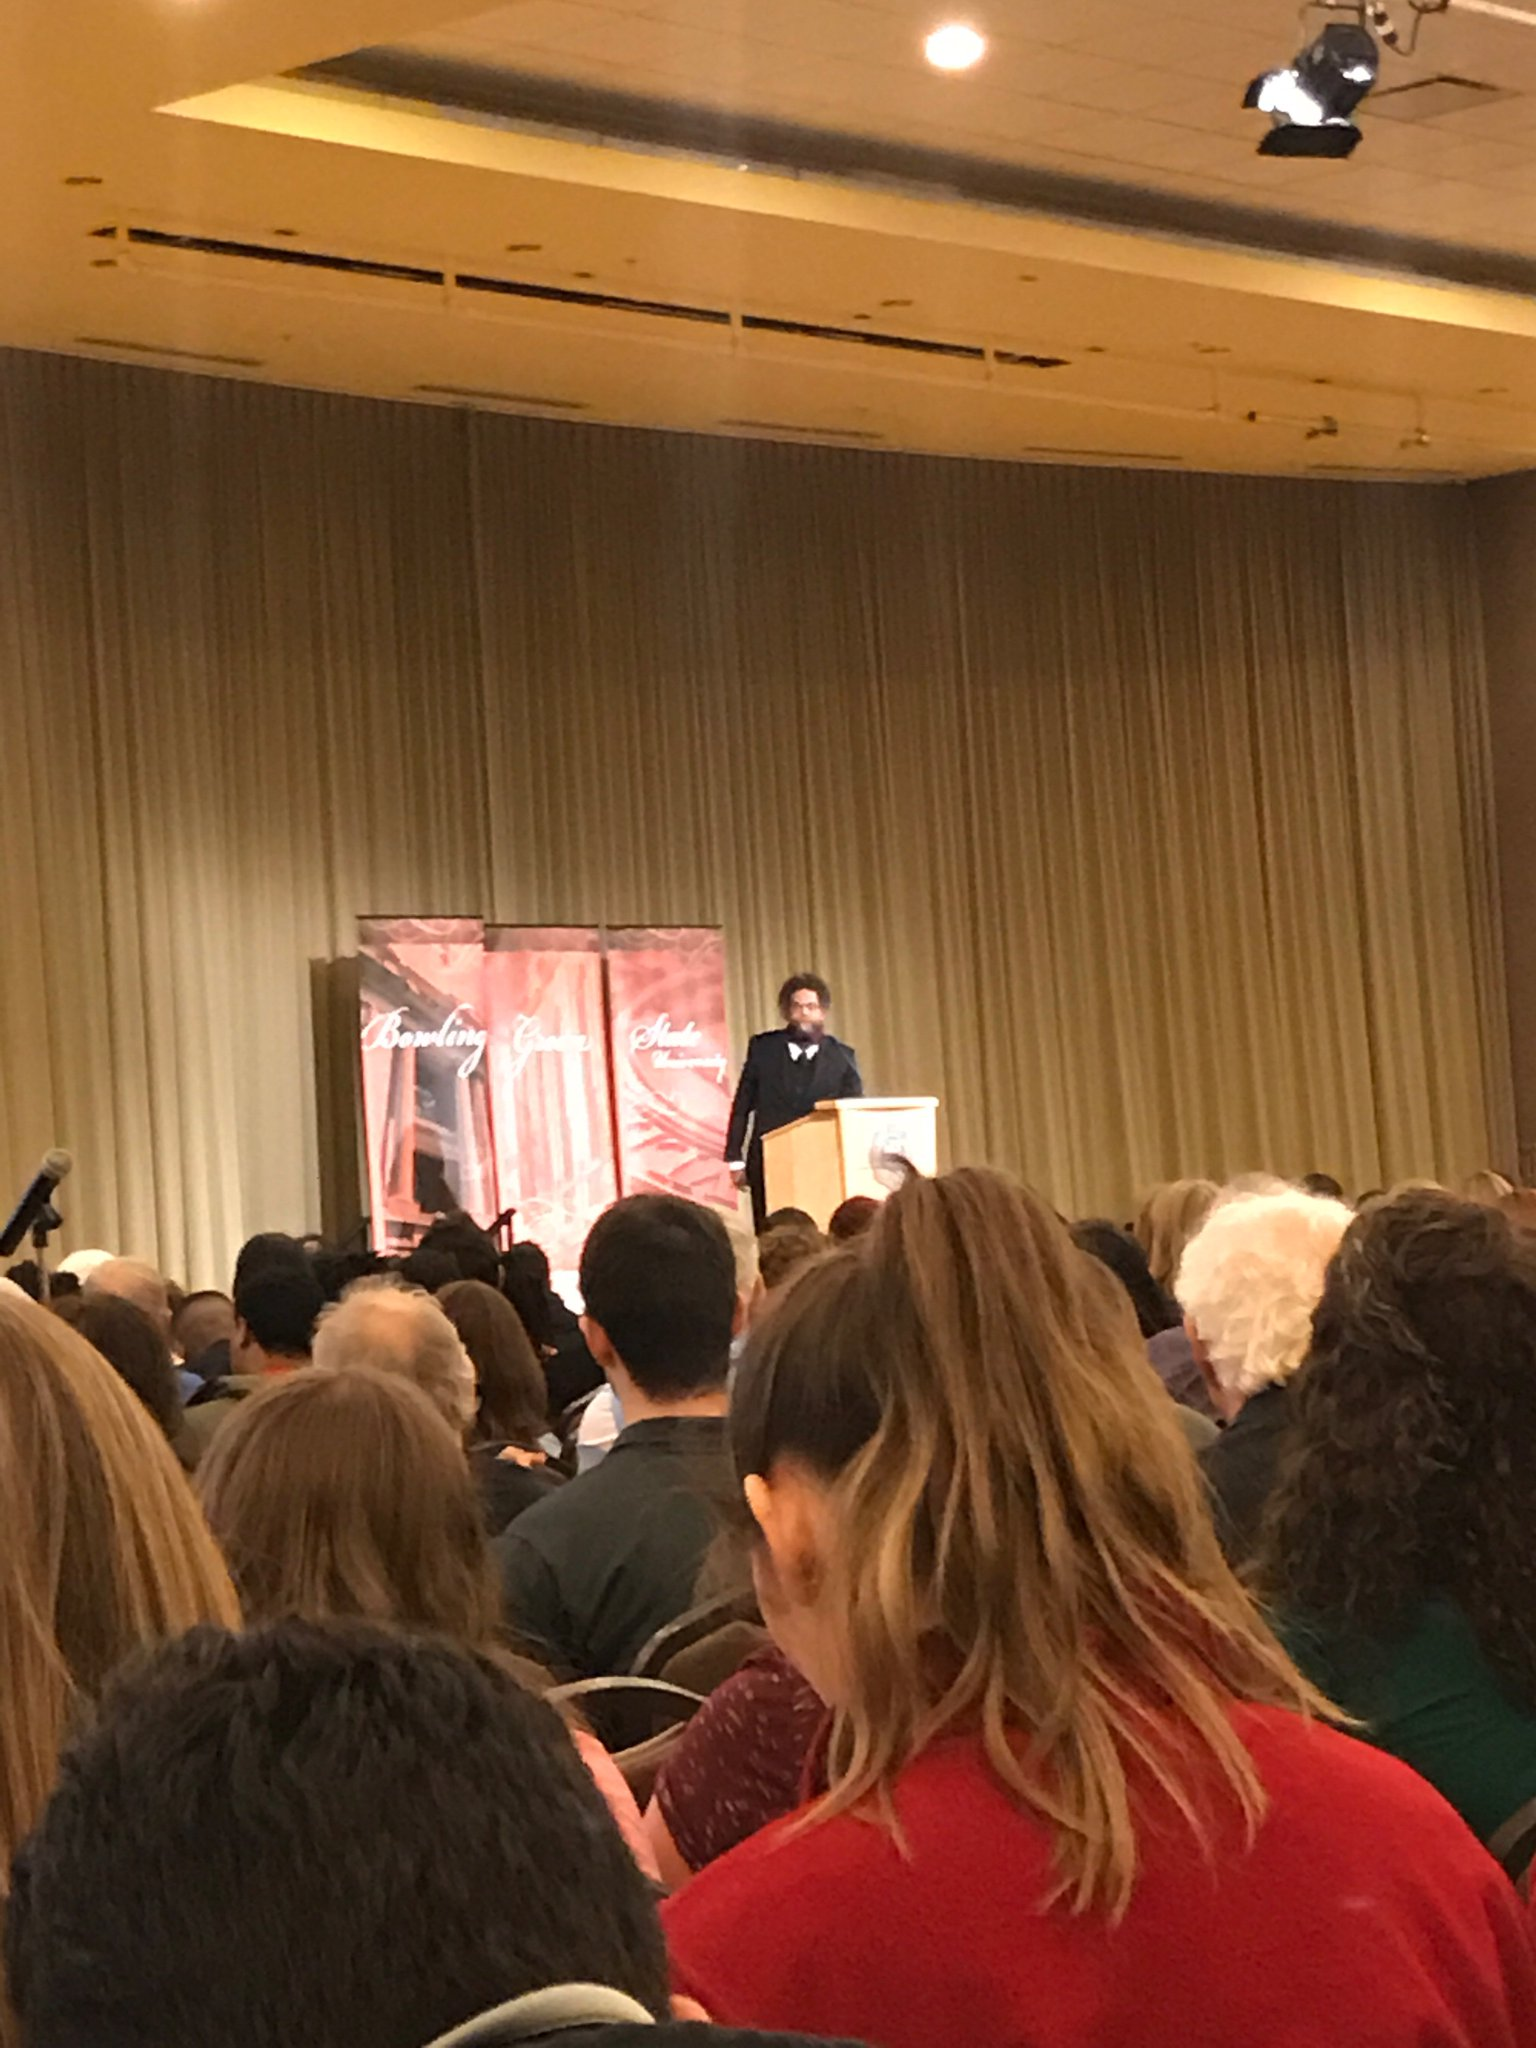 Cornel West speaking now at @bgsu. MLK not an icon in museum, but a wave in the ocean. https://t.co/YJC0JV7NlV